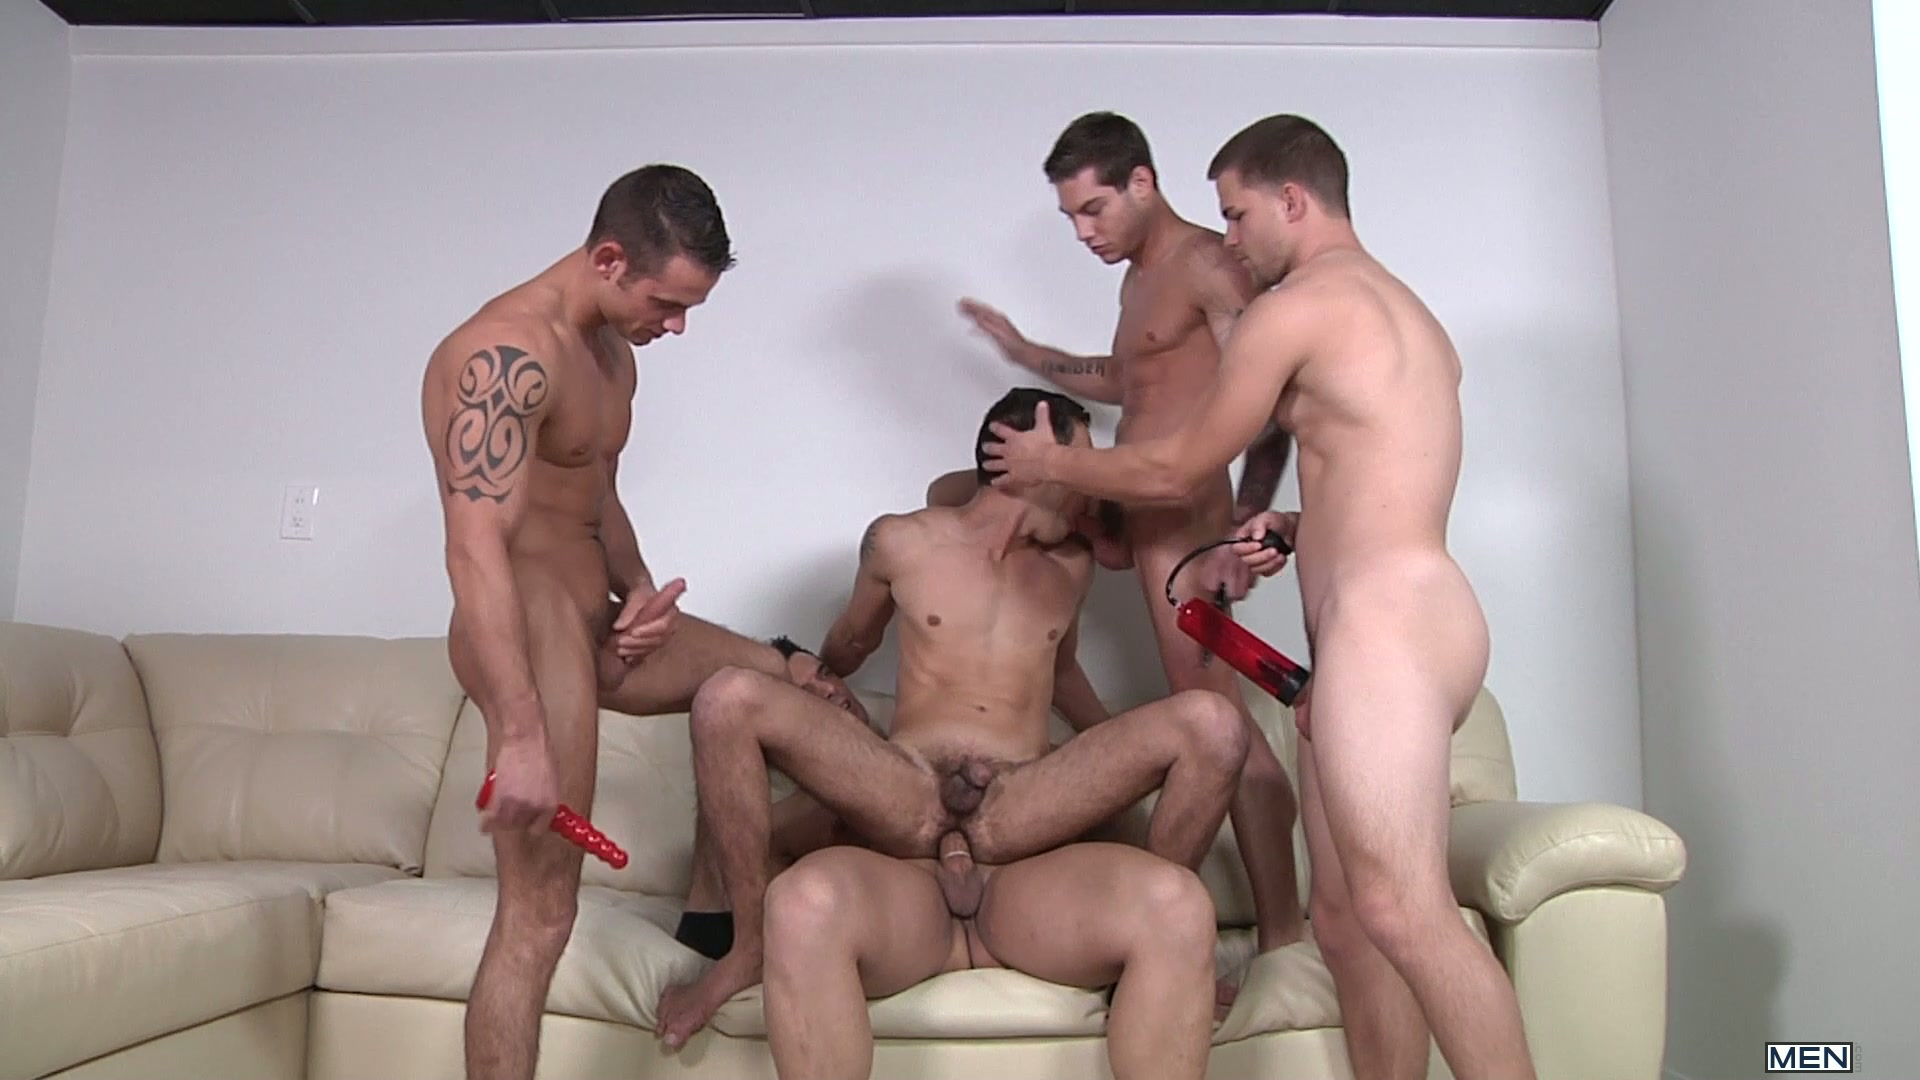 Watch Not Your Average Tupperware Party – Jo – Jizz Orgy – Cooper Reed – Jimmy Johnson – Landon Stone – Marcus Ruhl And Vance Crawford (MEN.COM) Gay Porn Tube Videos Gifs And Free XXX HD Sex Movies Photos Online